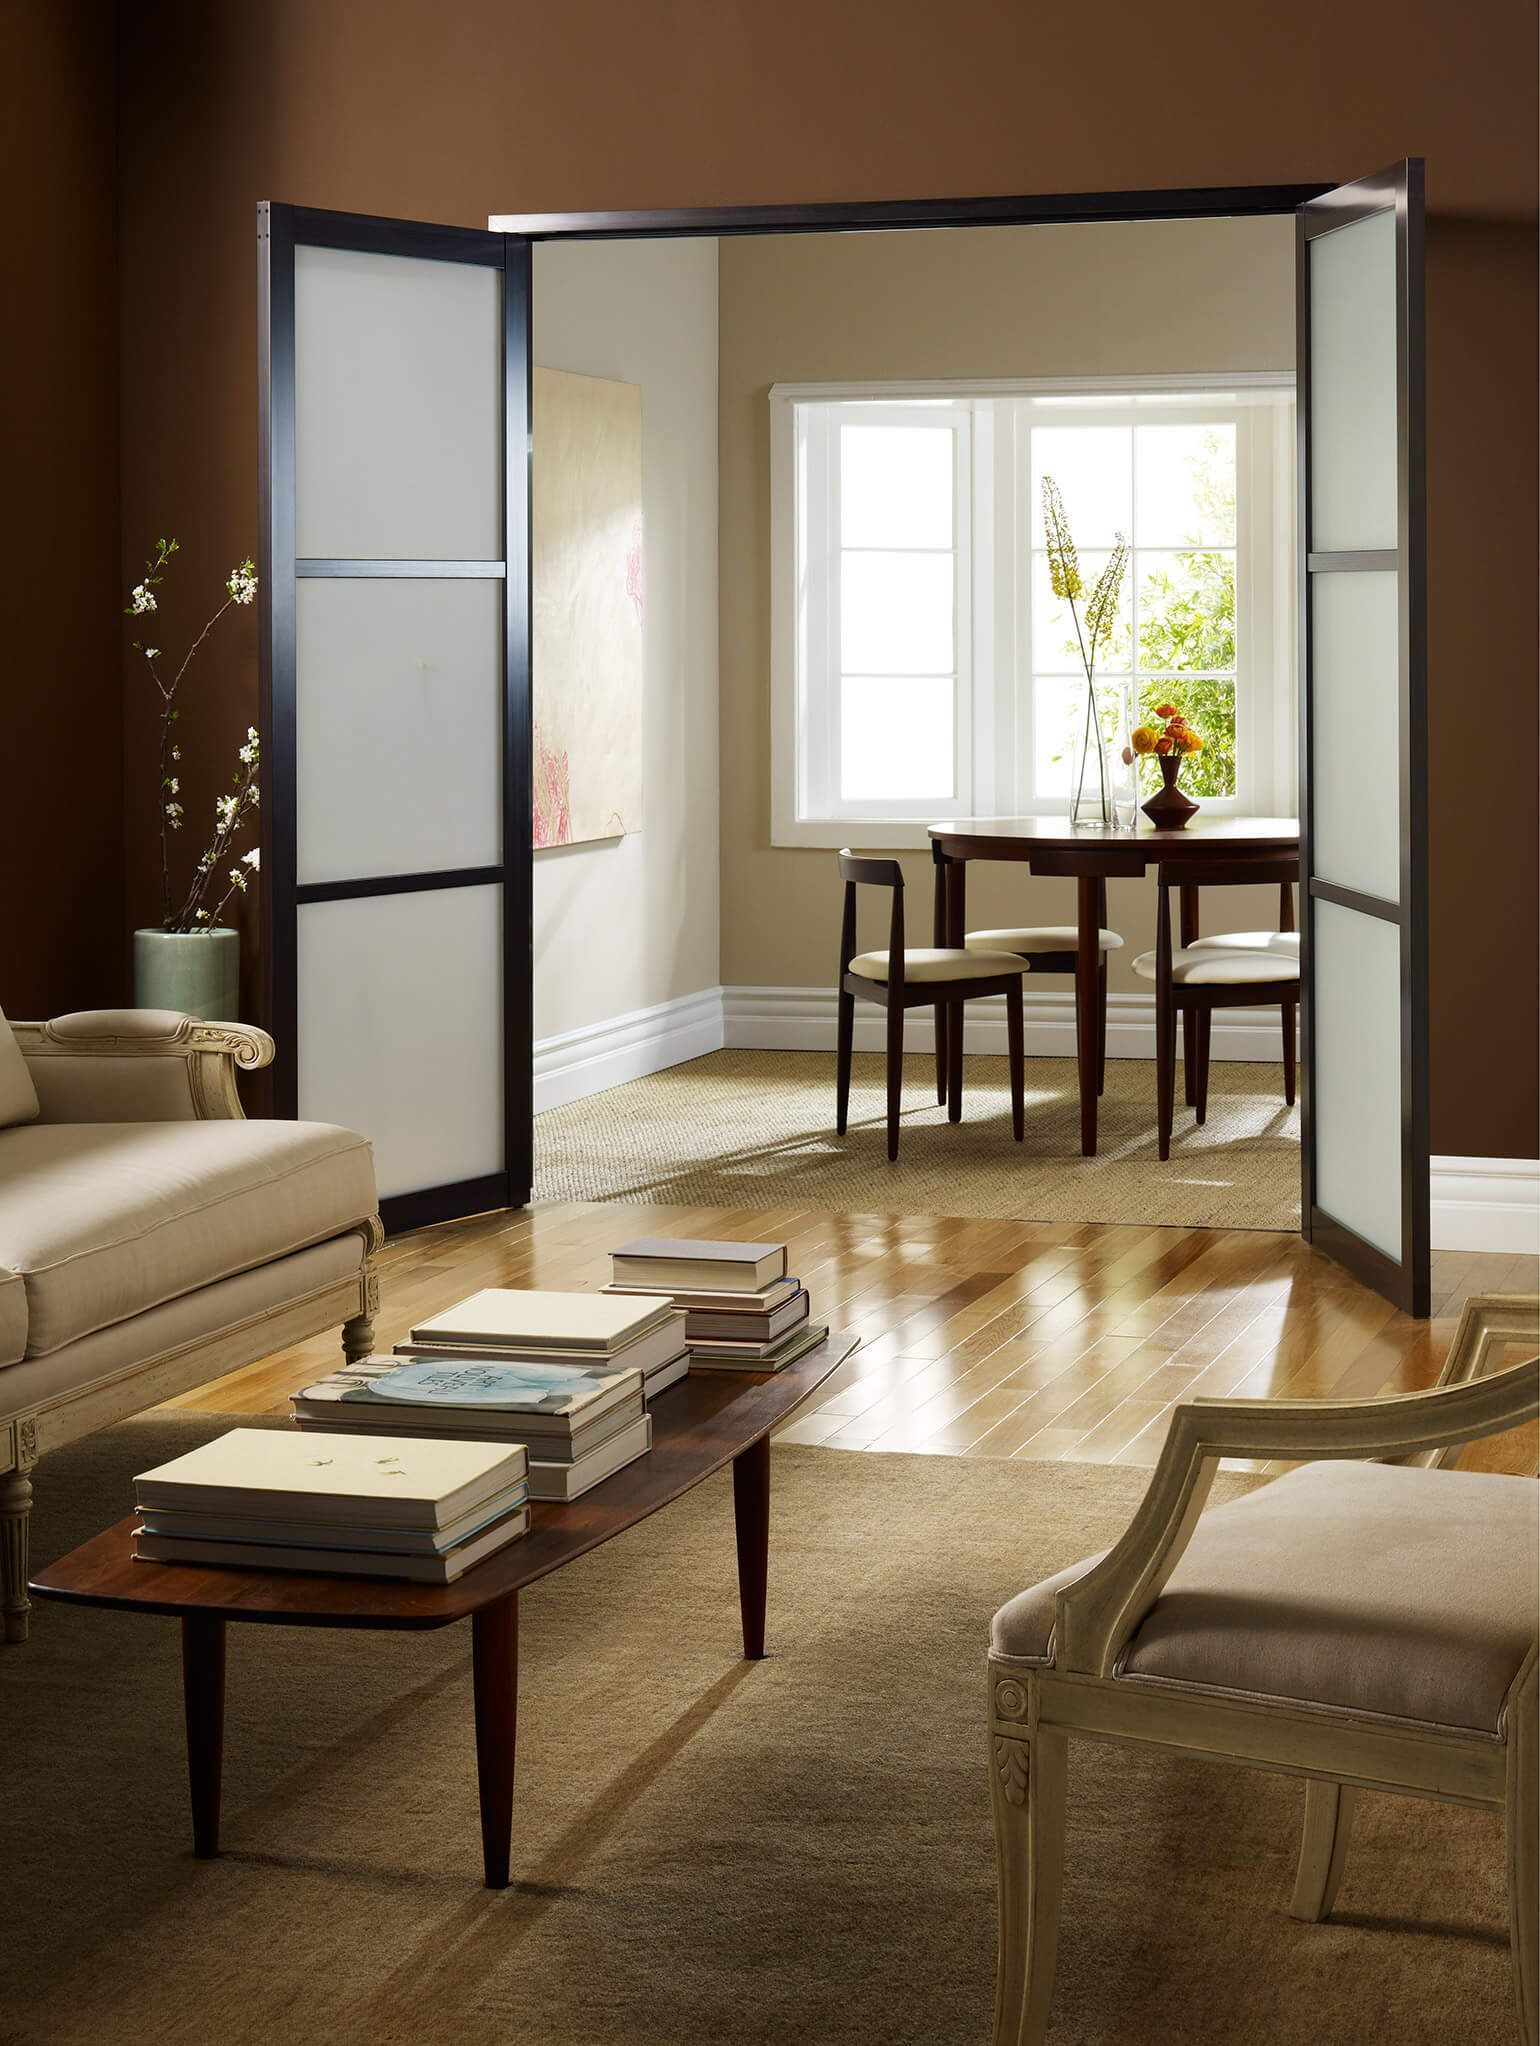 Home Office Sliding Glass Room Dividers Inspirational Gallery: Glass French Doors Double Swing Inspirational Gallery